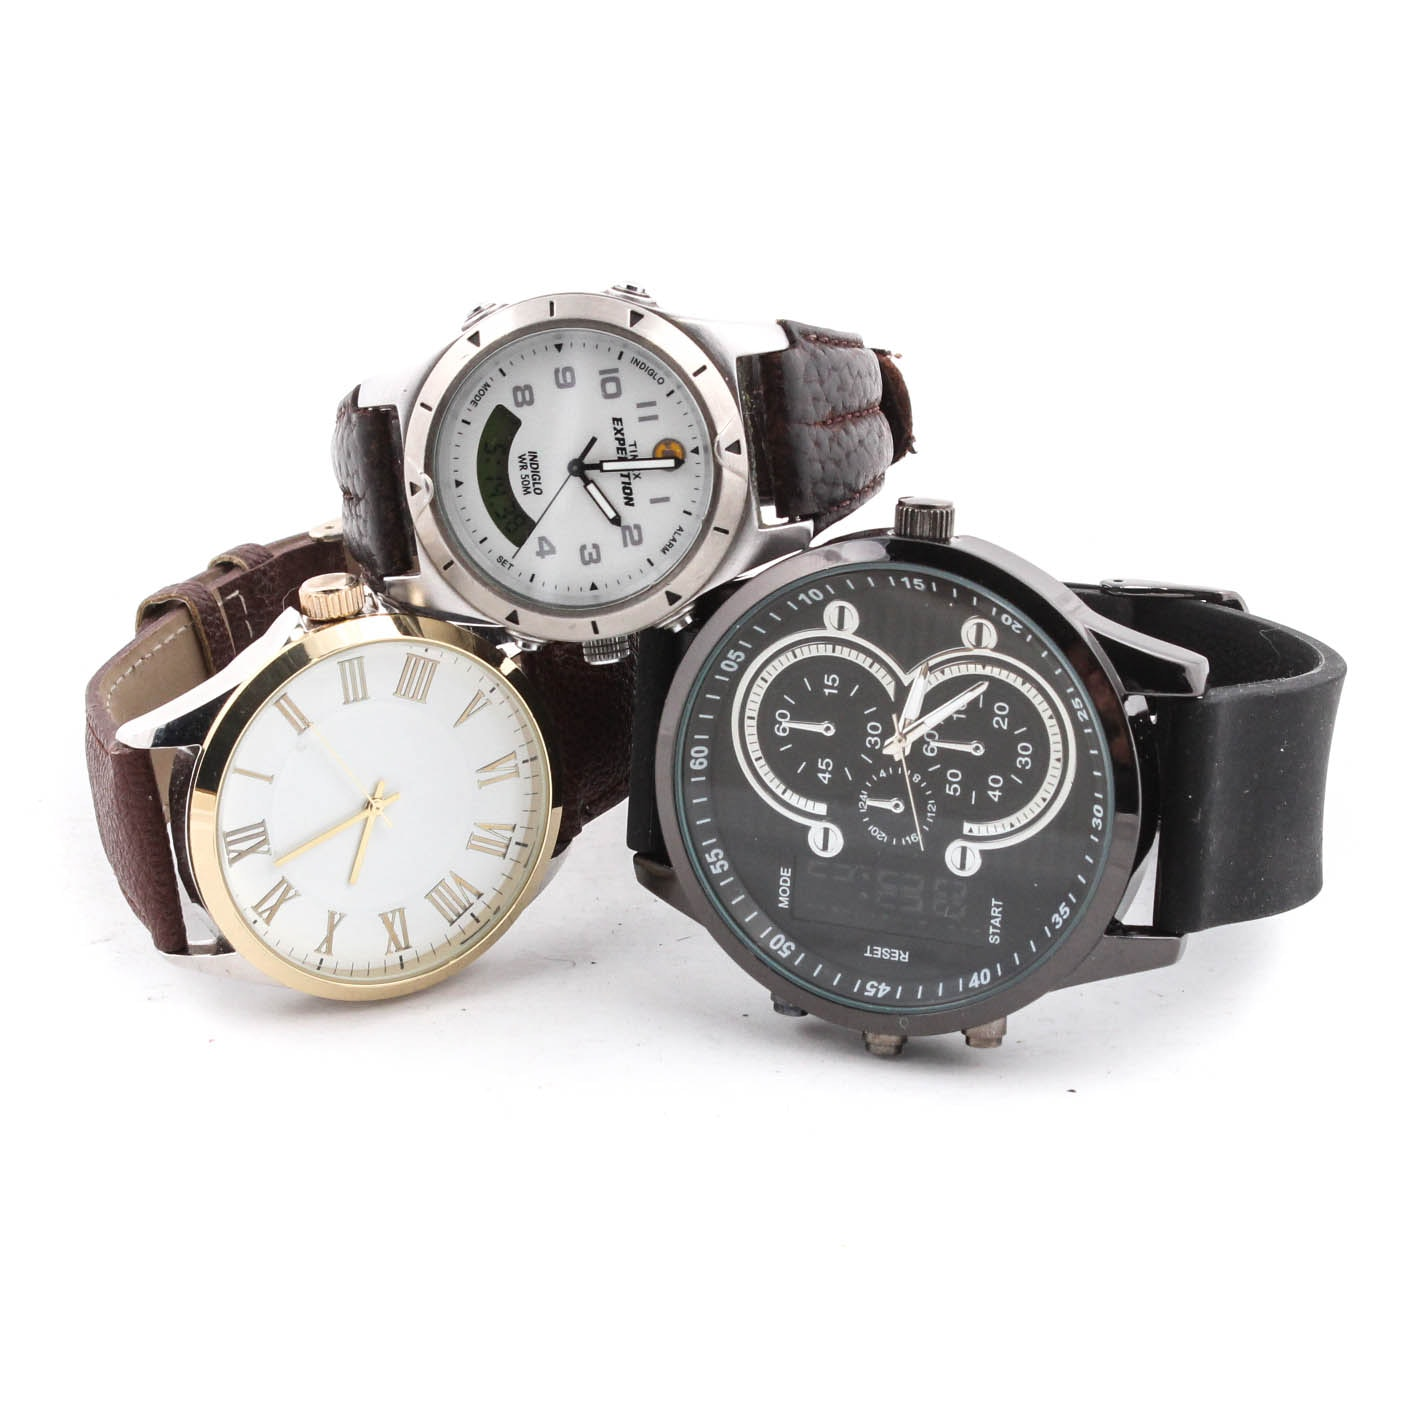 Wristwatches with Timex and FMD